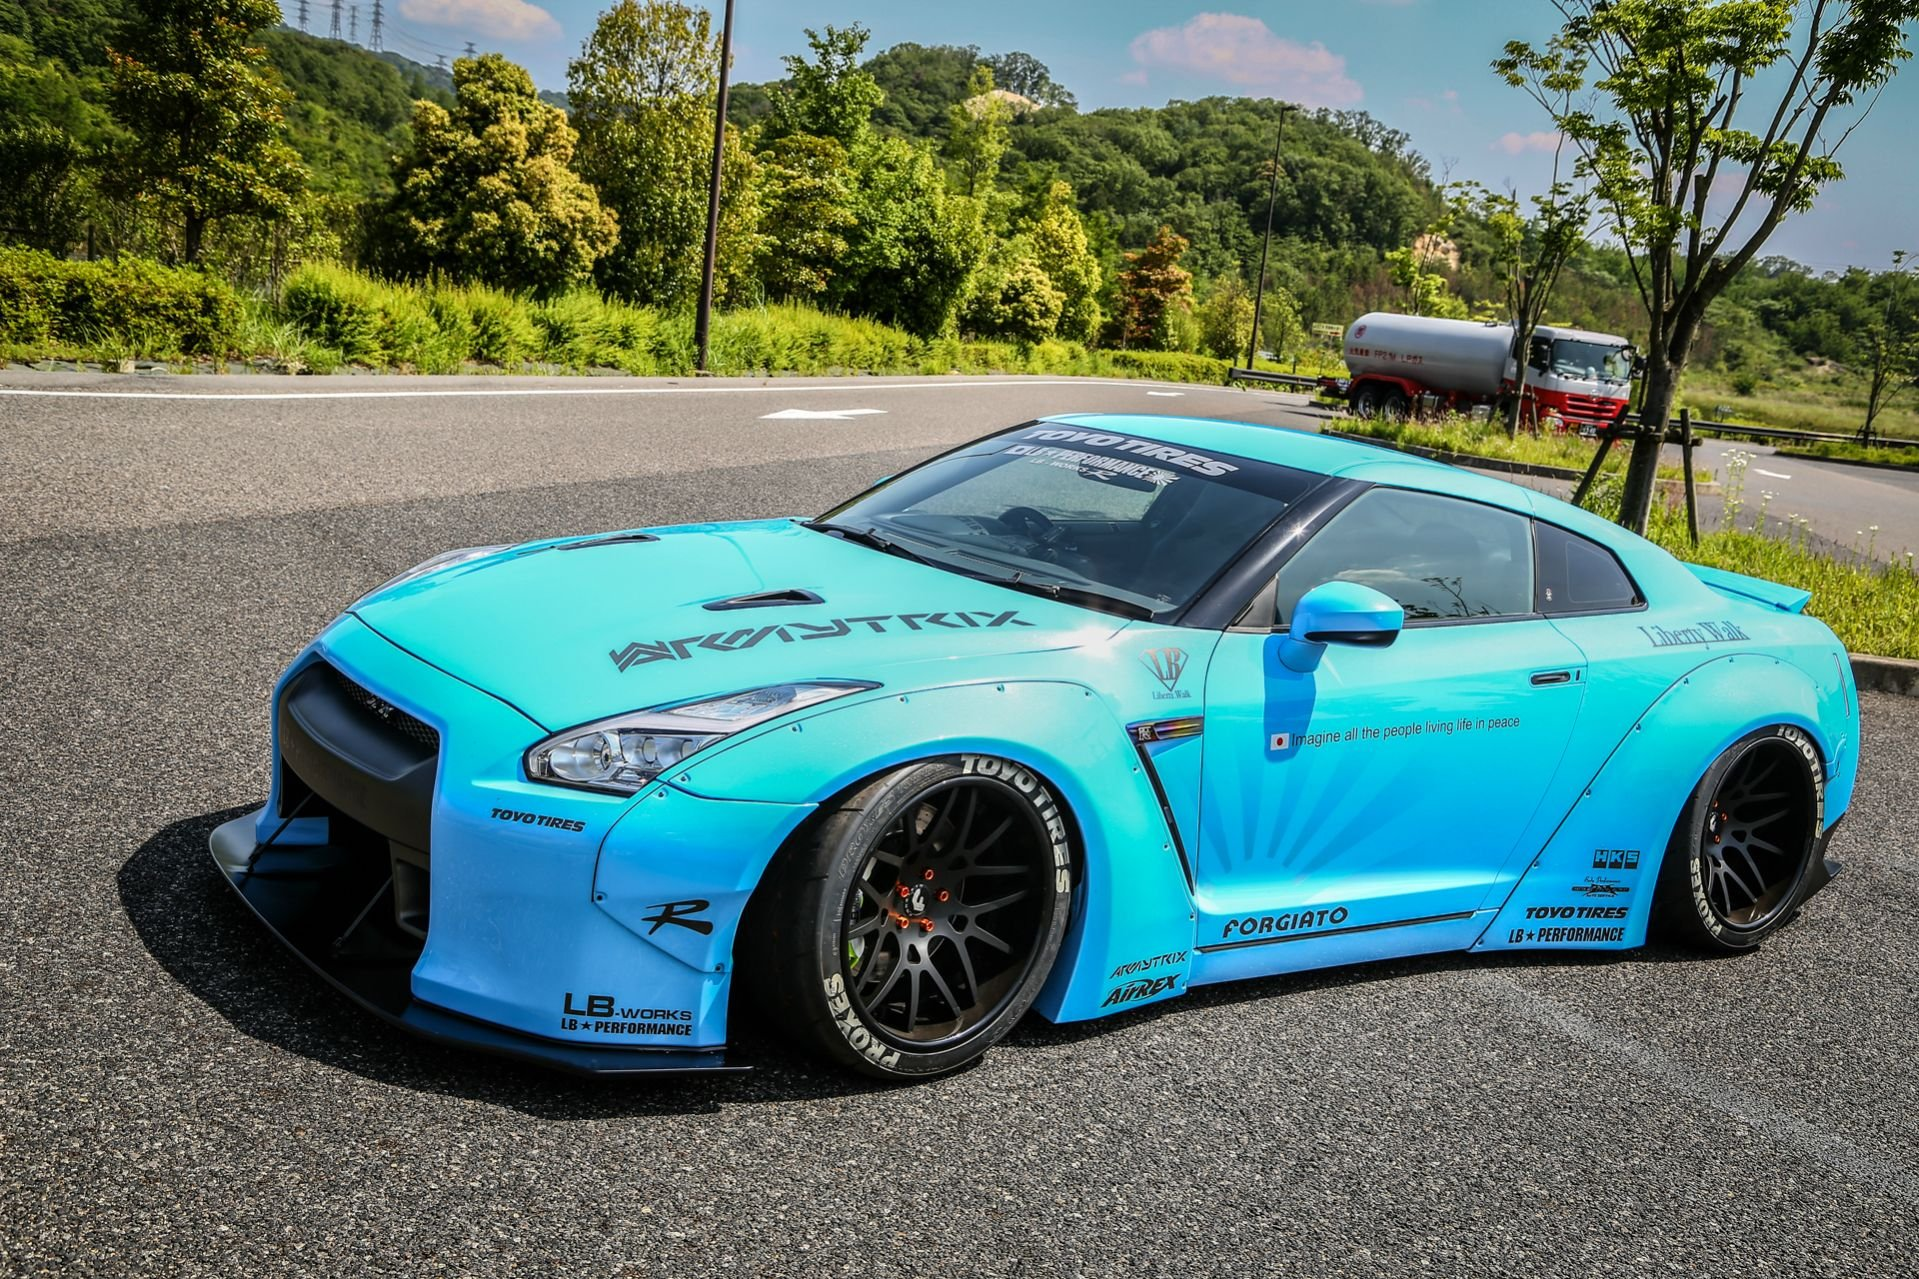 Gt R Nismo Nissan R35 Tuning Supercar Coupe Japan Cars